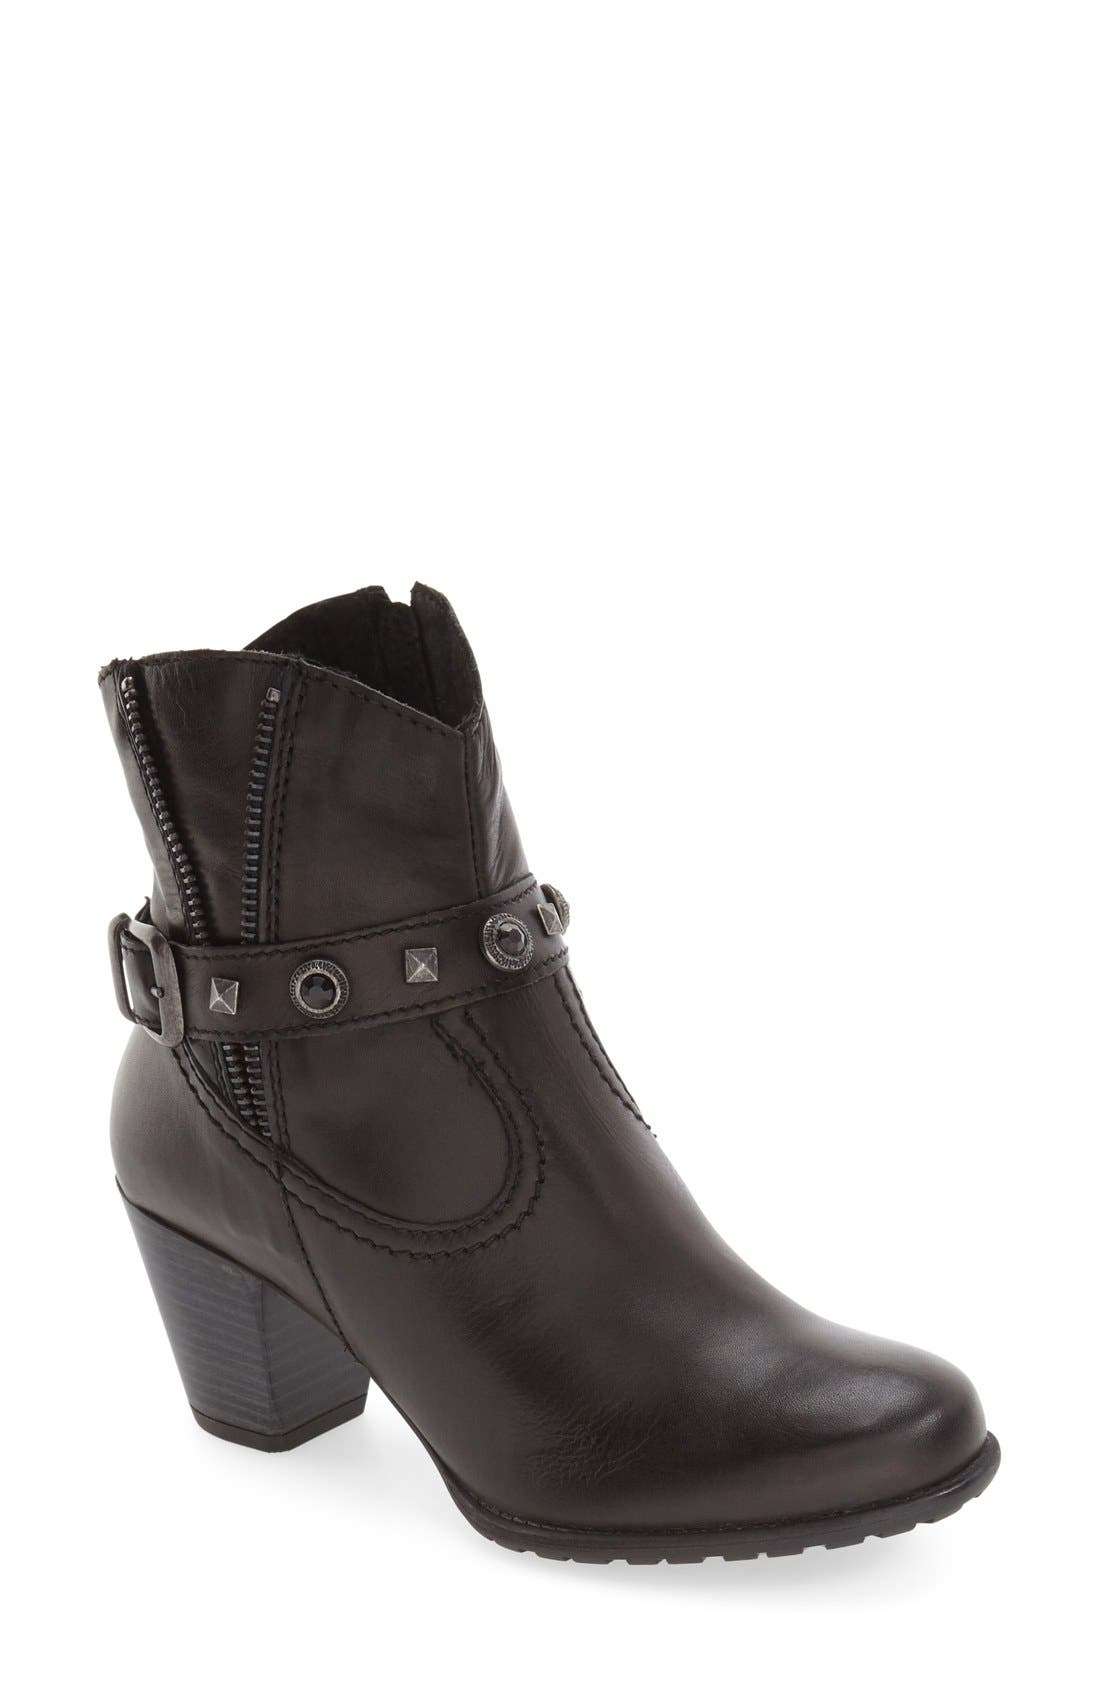 'Ramona' Boot,                             Main thumbnail 1, color,                             Black Leather